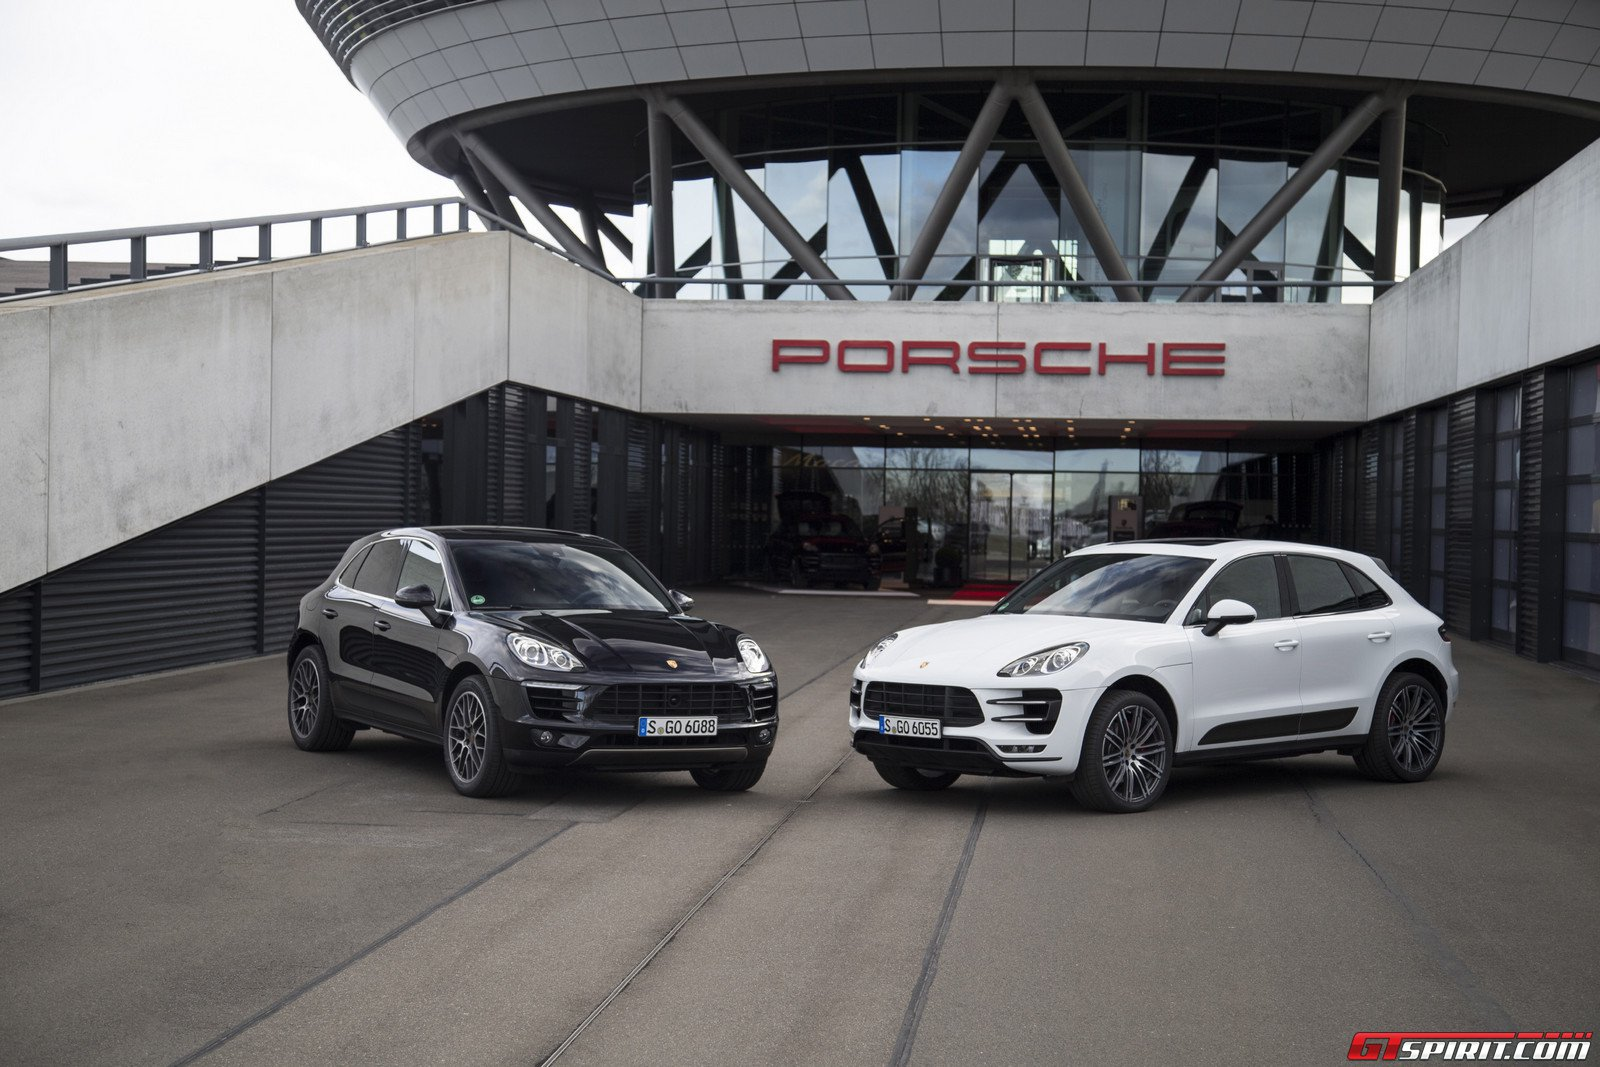 2015 porsche macan s vs s diesel vs macan turbo review - gtspirit